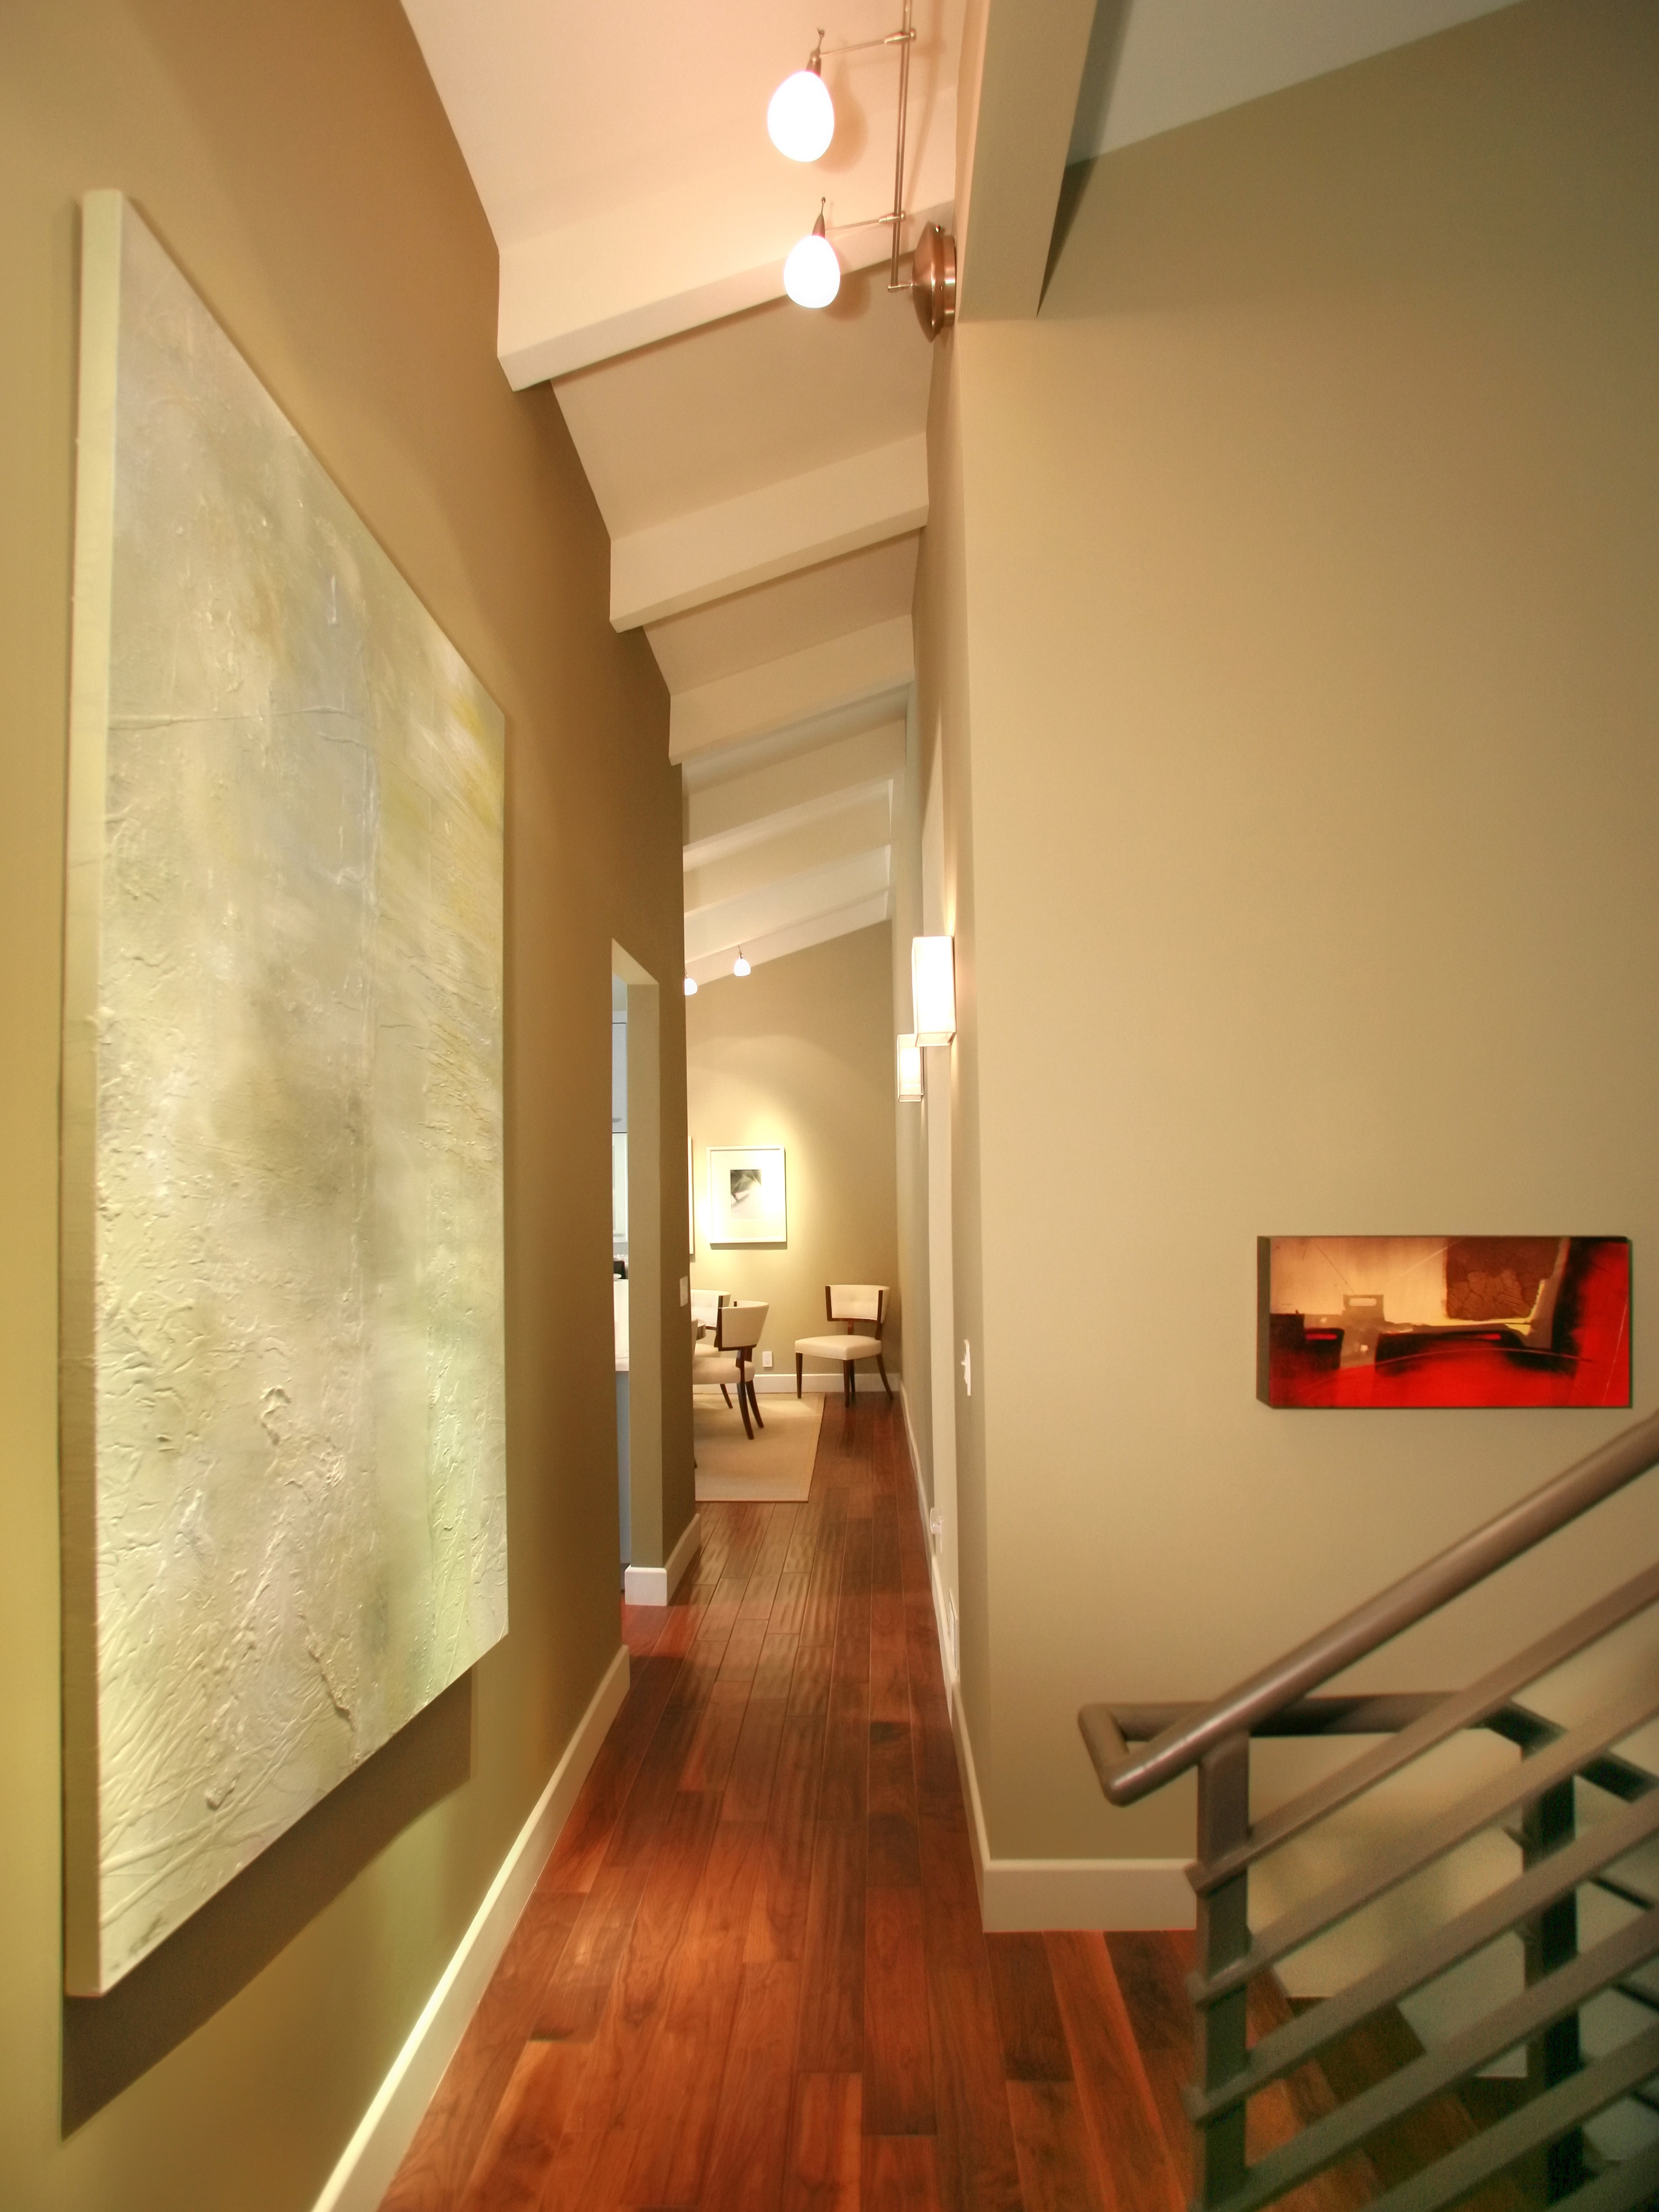 Modern Angled Beam Ceiling Hallway Design (View 10 of 31)